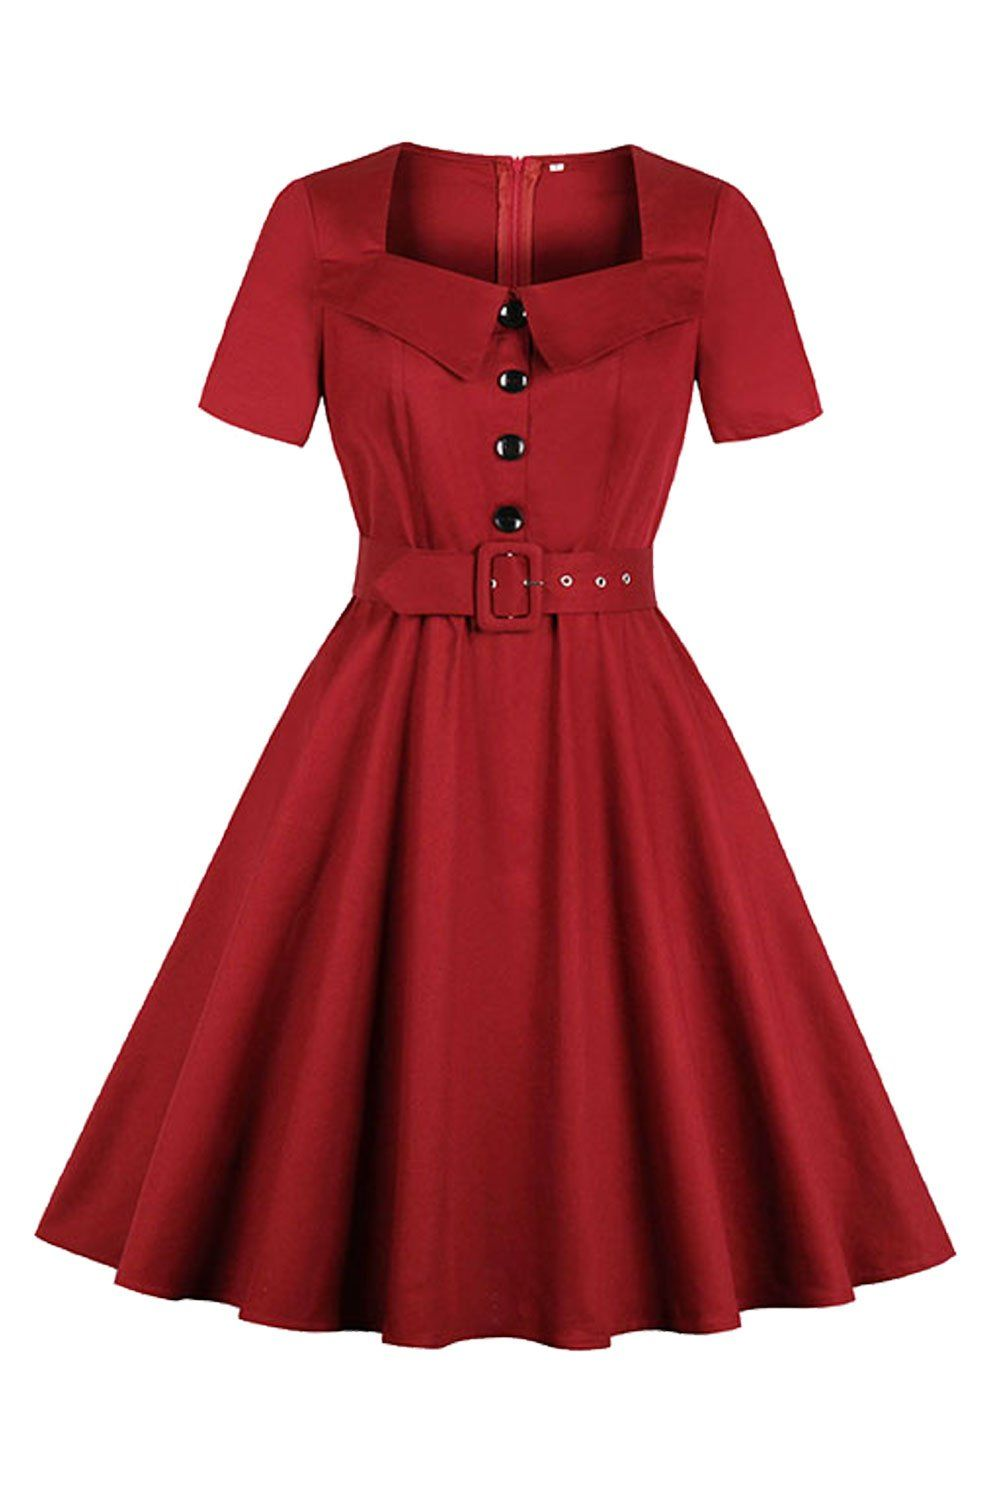 Atomic Vintage Wine Red Dress With Belt In 2020 Vintage Dresses 1940s Vintage Dresses Wine Red Dress